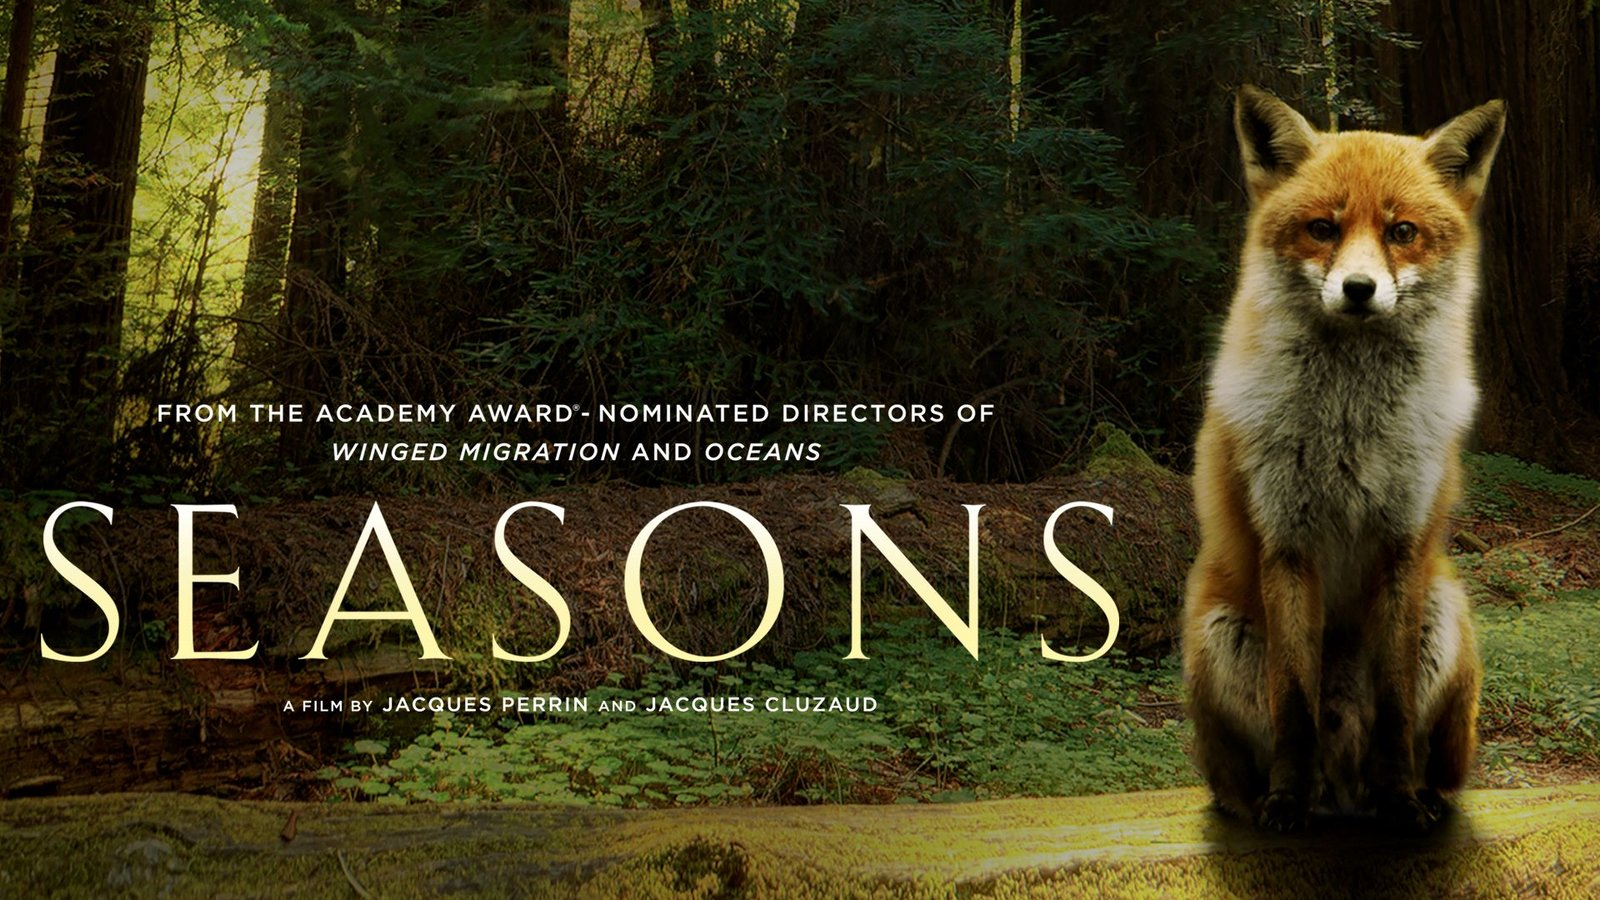 Seasons - A Journey into the Forests of Europe